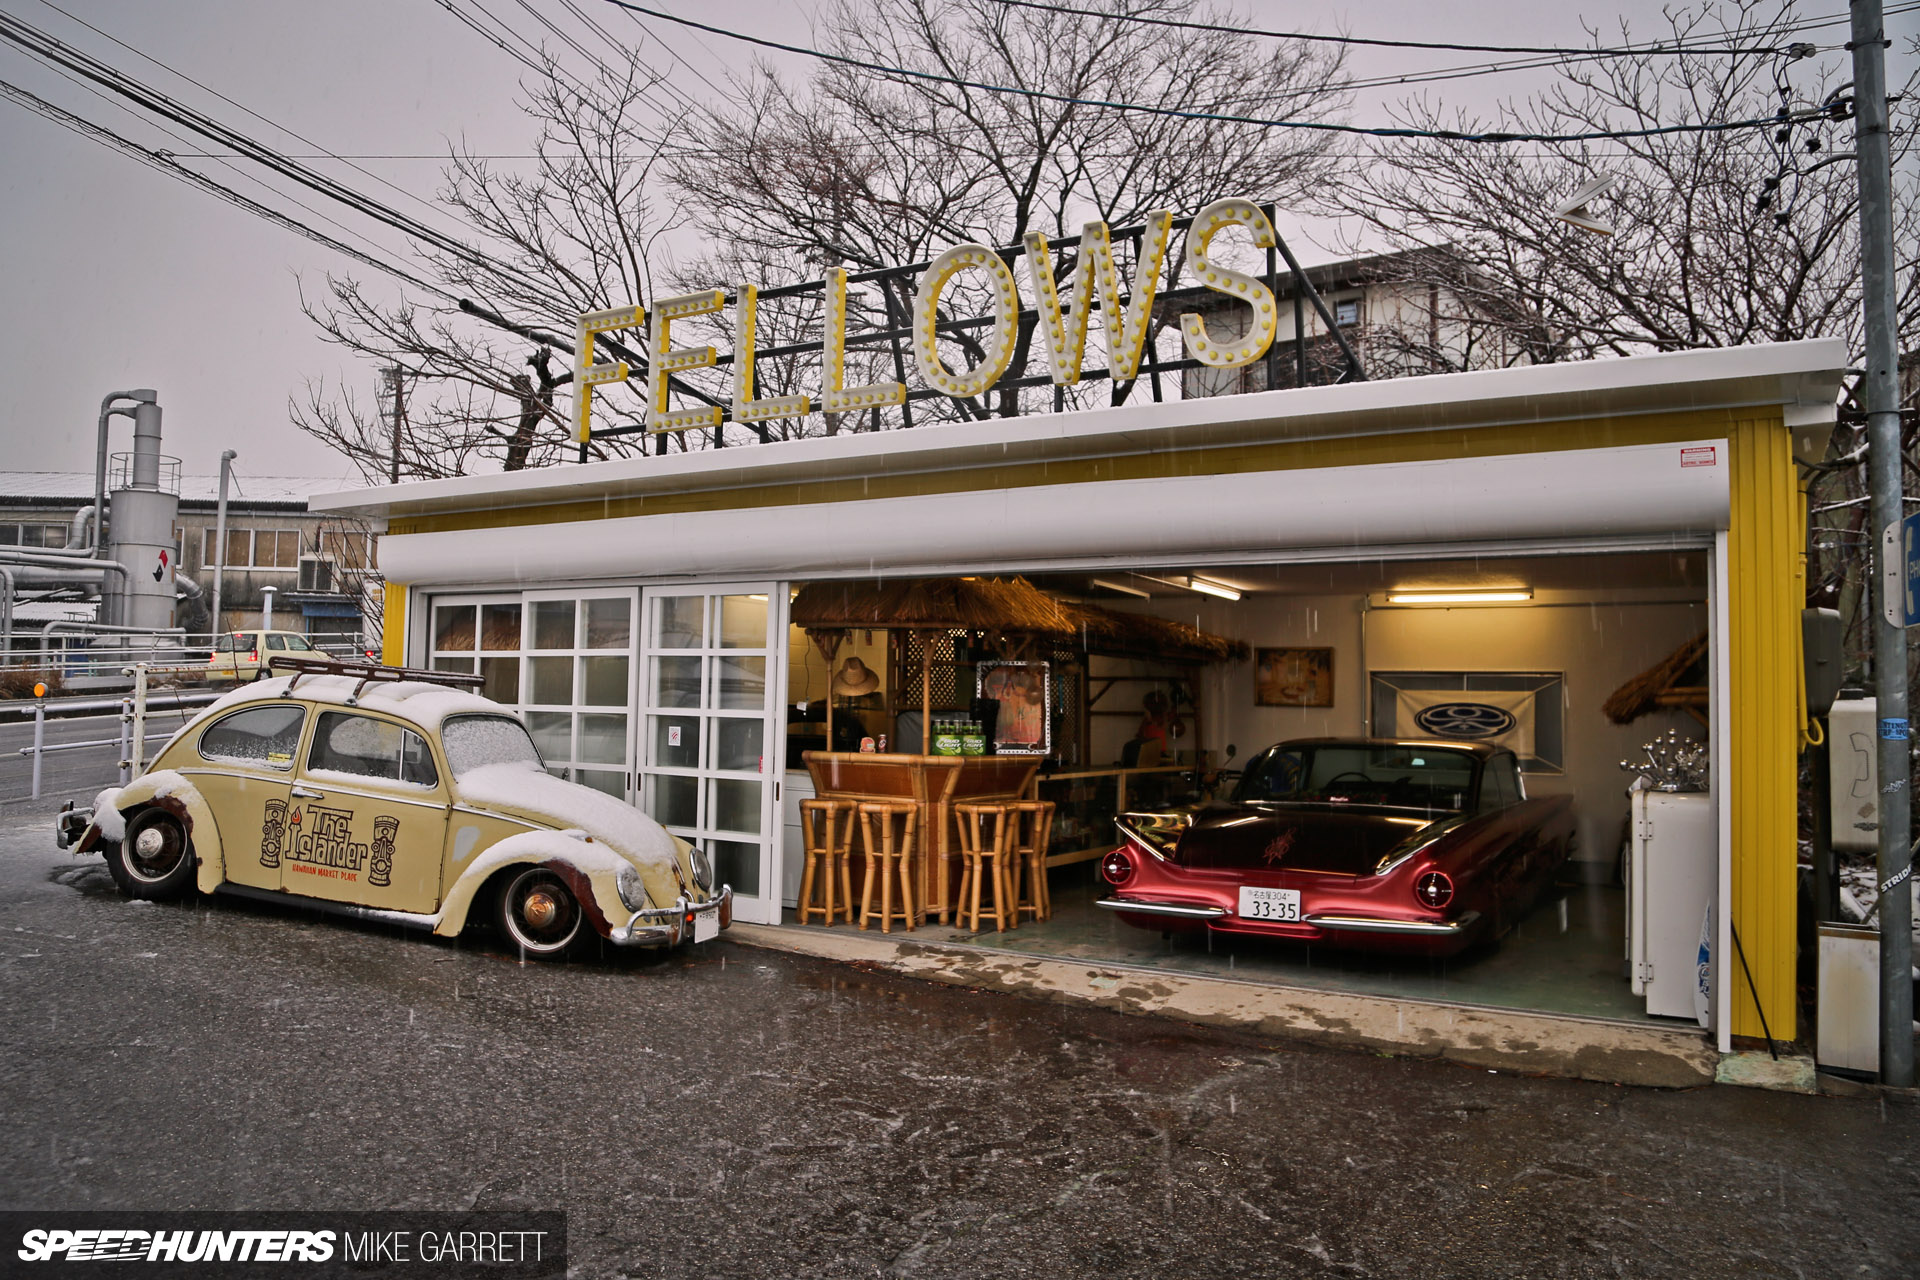 The ultimate car hangout spot speedhunters for Cool car garage ideas